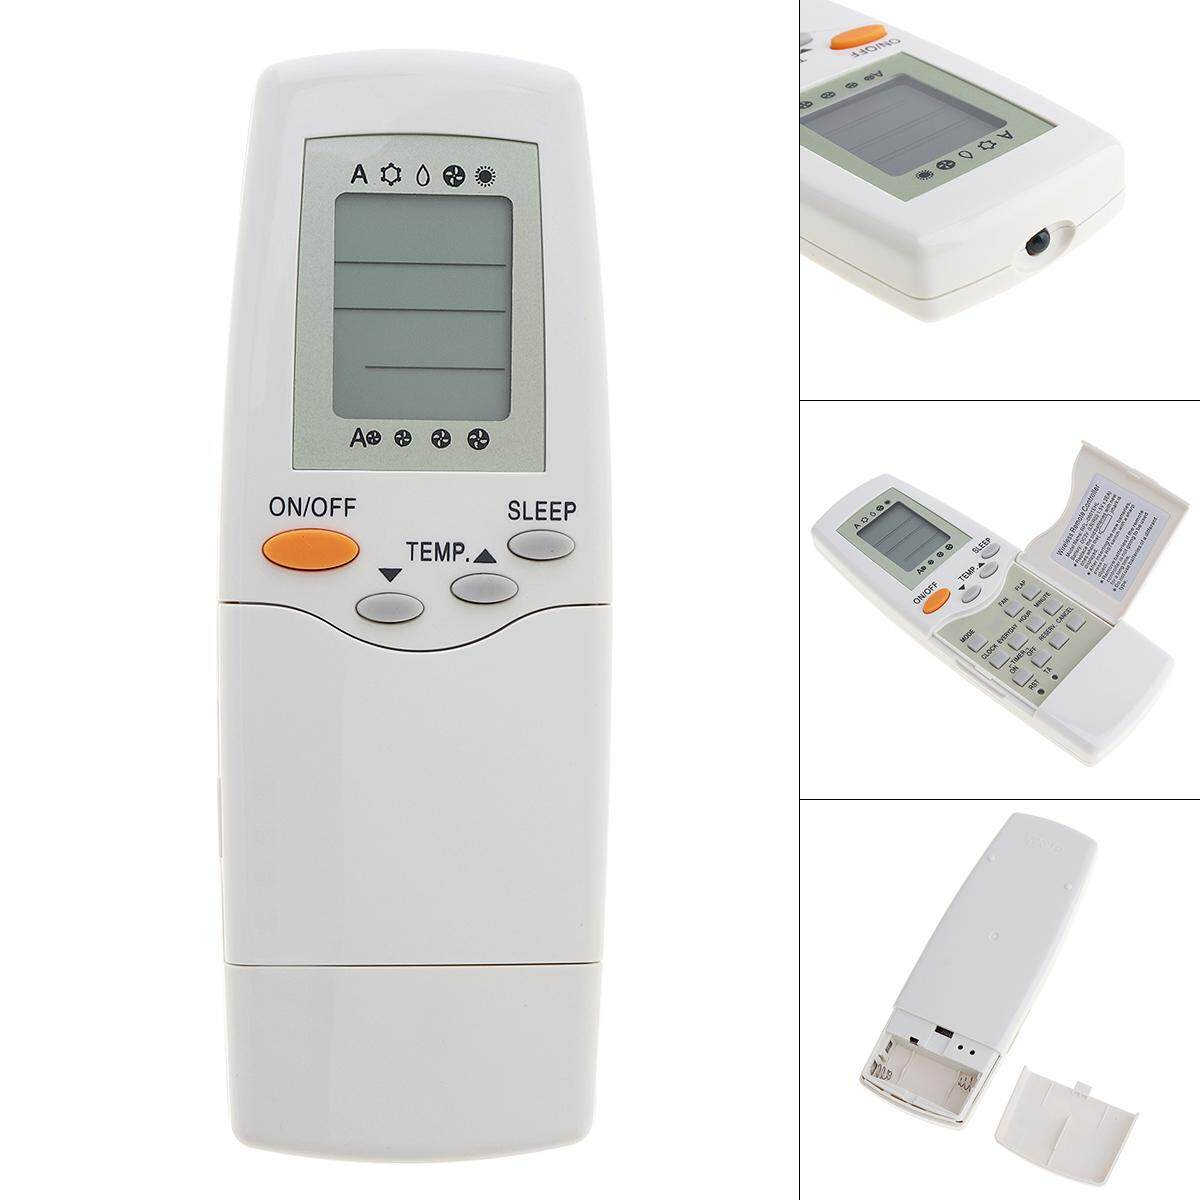 Air Conditioner Remote Control English Version with HD Screen Support 2 AAA for RFL-0601 / RFL-0301E Carrier Air Conditioner